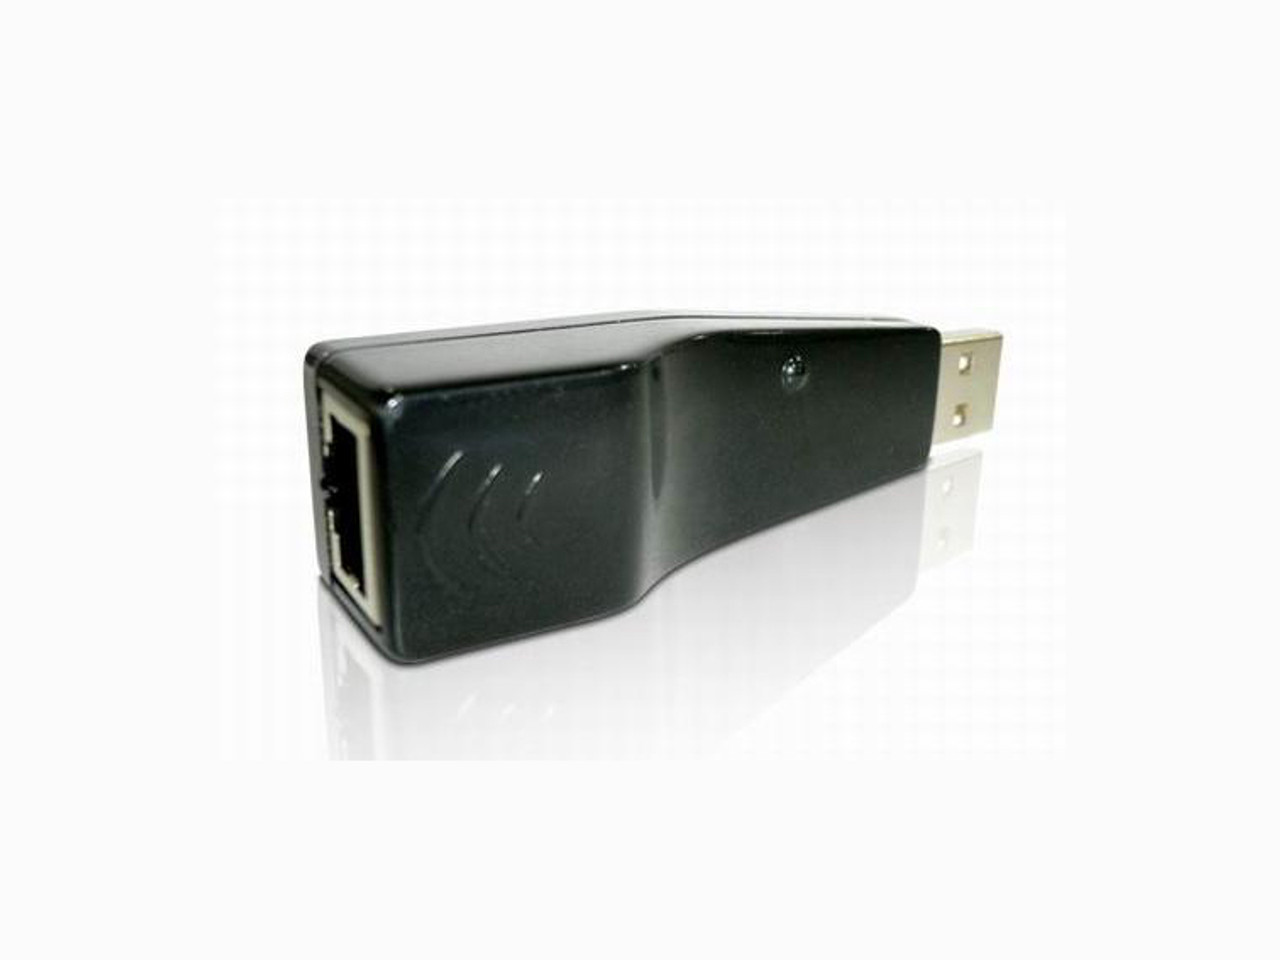 Product image for USB 2.0 TO 10/100 Ethernet Adaptor | CX Computer Superstore